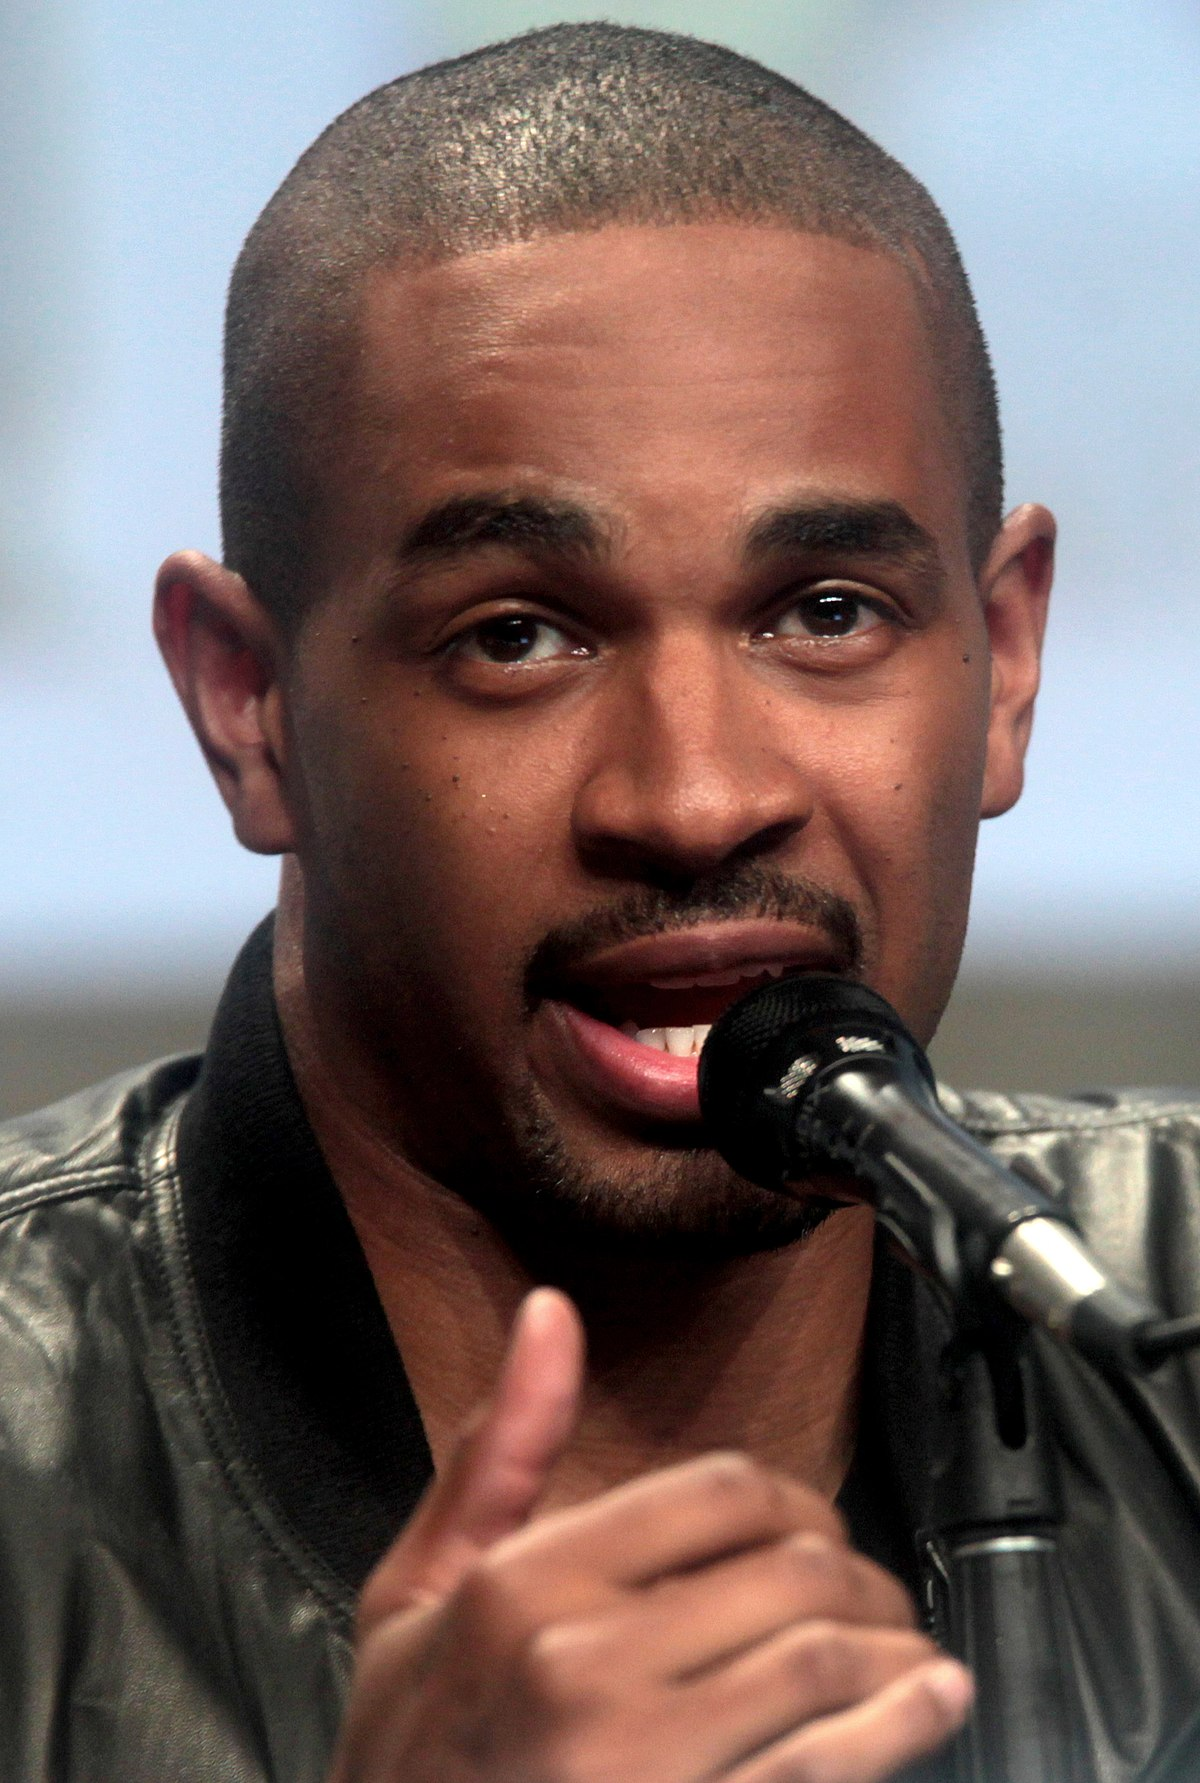 Damon wayans jr wikipedia for Damon wayans jr